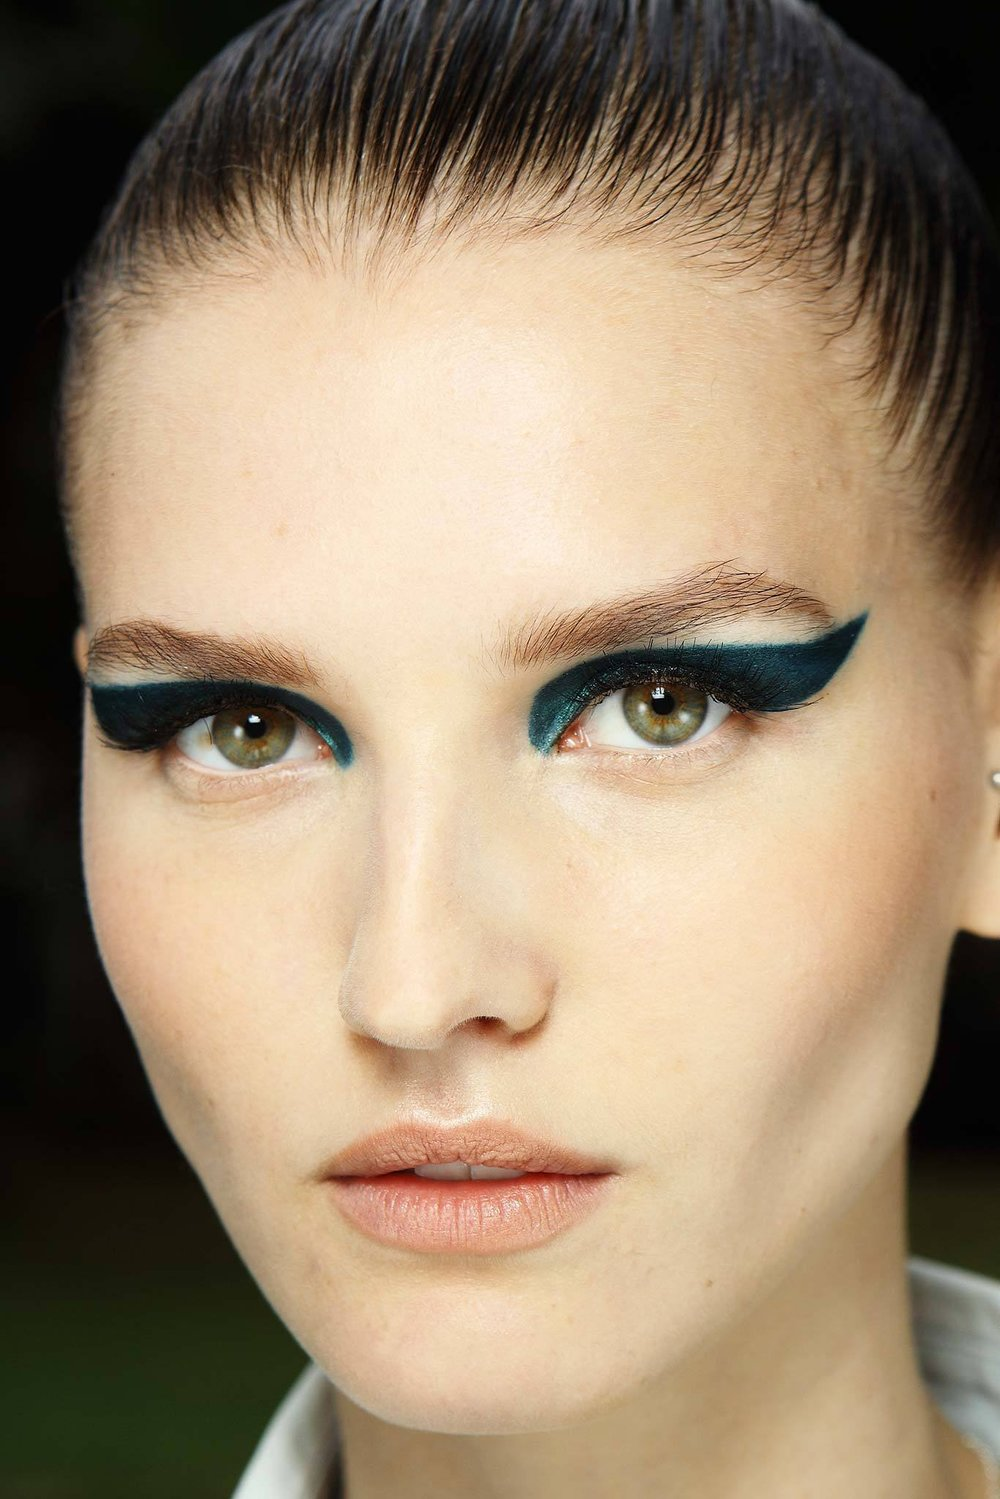 BRIGHT & BOLD Dramatic wings done in a rich jewel tone are worthy of Versace Couture—and a big night out. Stencil the shape with a teal pencil first, then apply a shimmery peacock-blue shadow from inner corner to end point. To set, dust a shimmery turquoise powder over top.